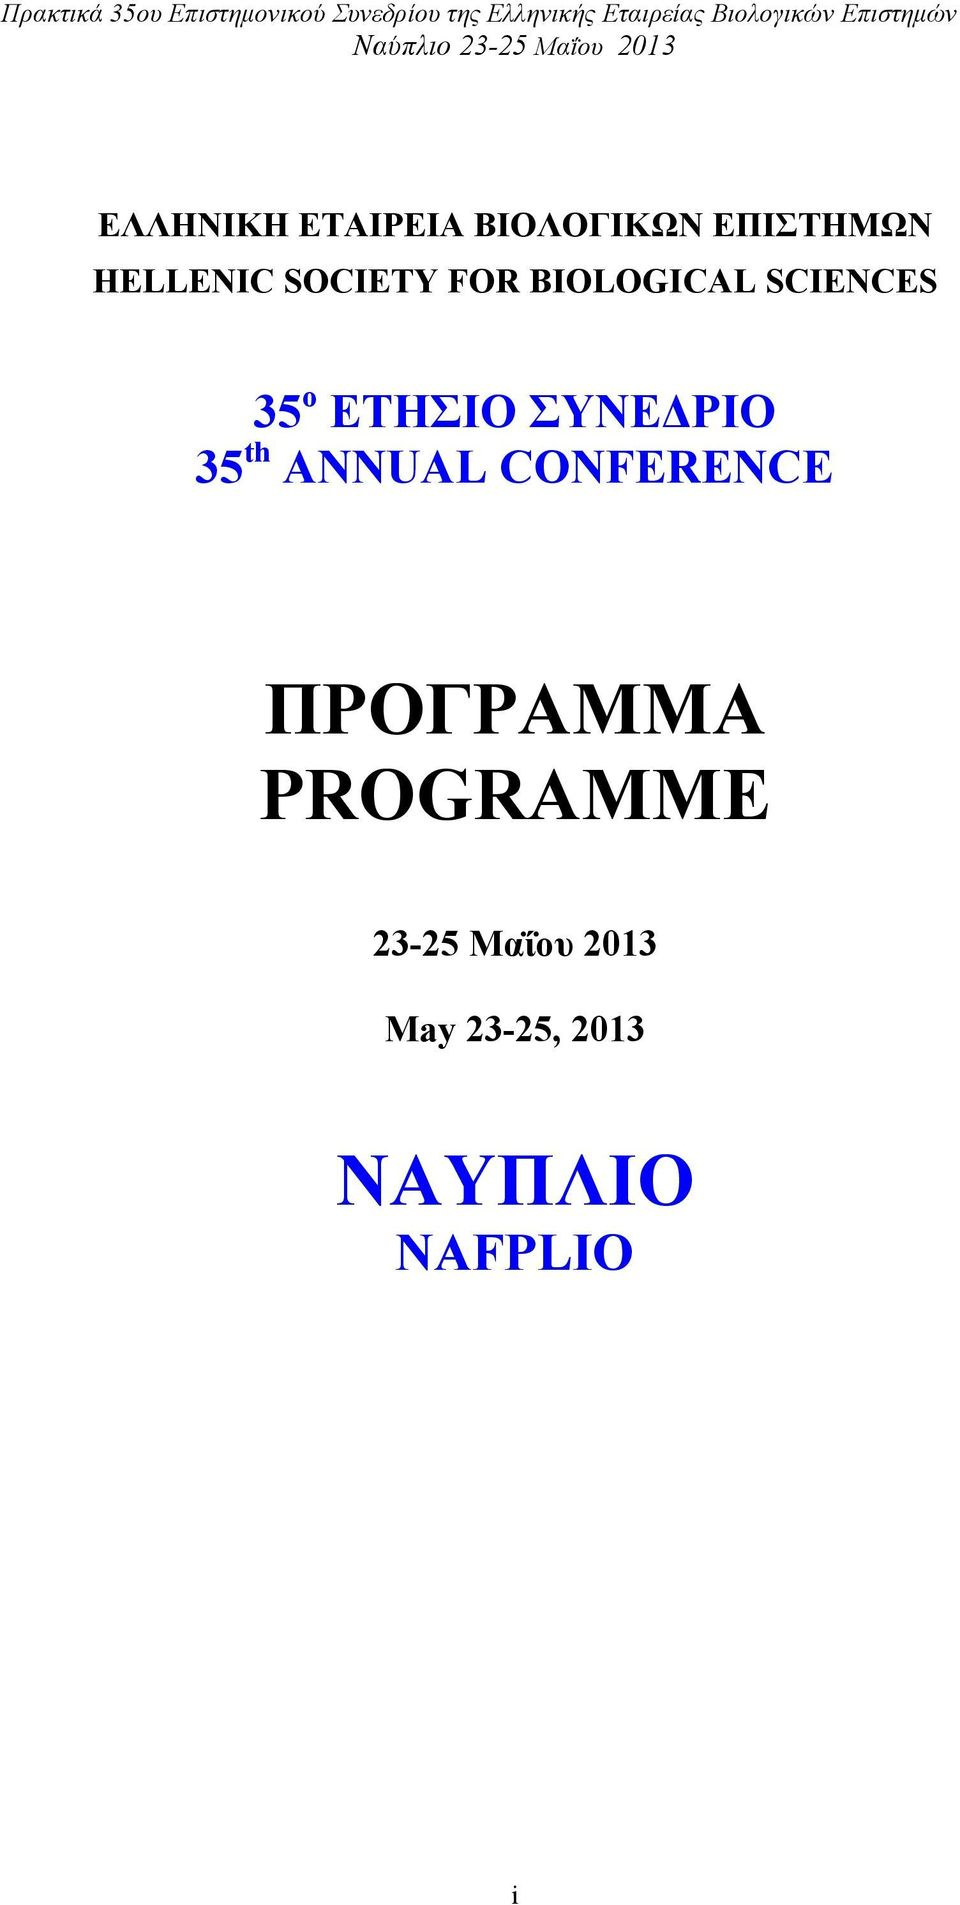 HELLENIC SOCIETY FOR BIOLOGICAL SCIENCES 35 ο ΕΤΗΣΙΟ ΣΥΝΕΔΡΙΟ 35 th ANNUAL